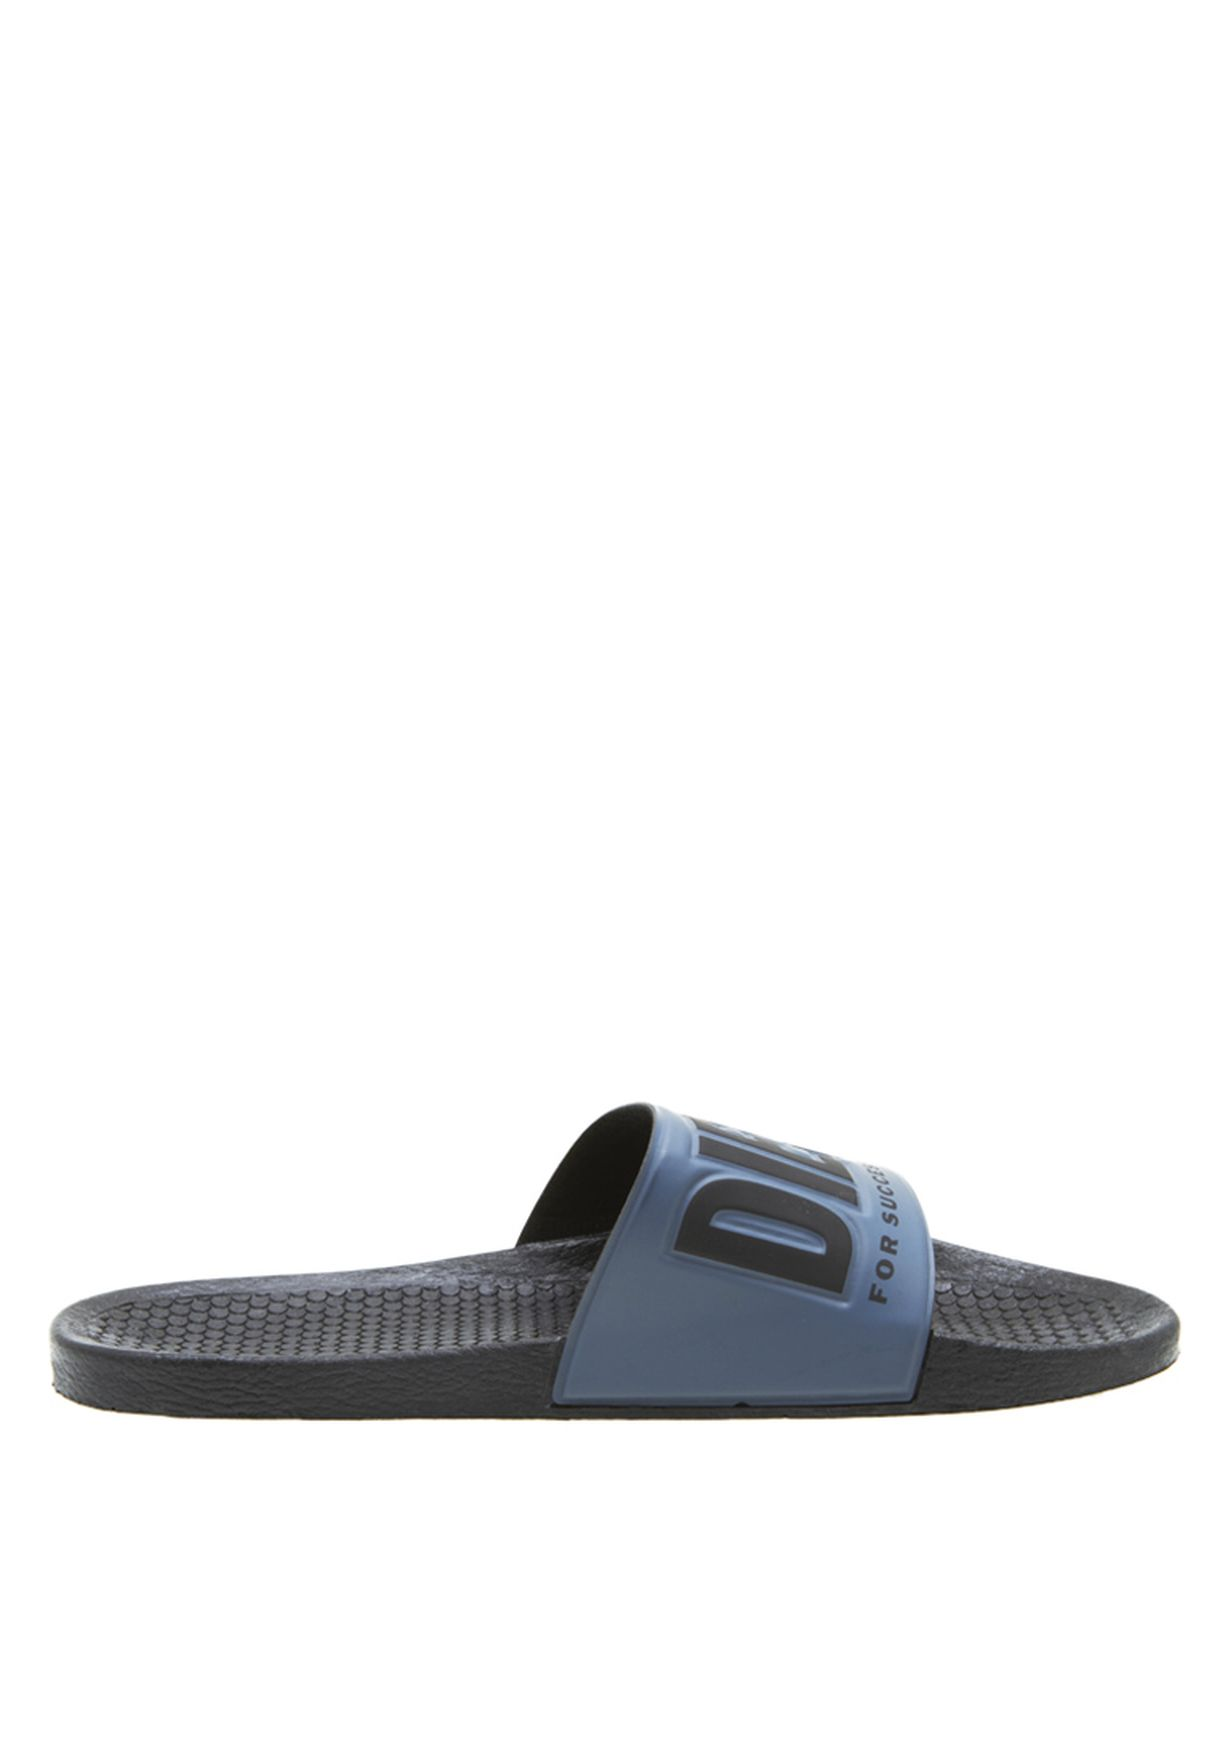 c1d481ad5af9 Shop Diesel black Casual Slides for Men in UAE - DI035SH22SJX